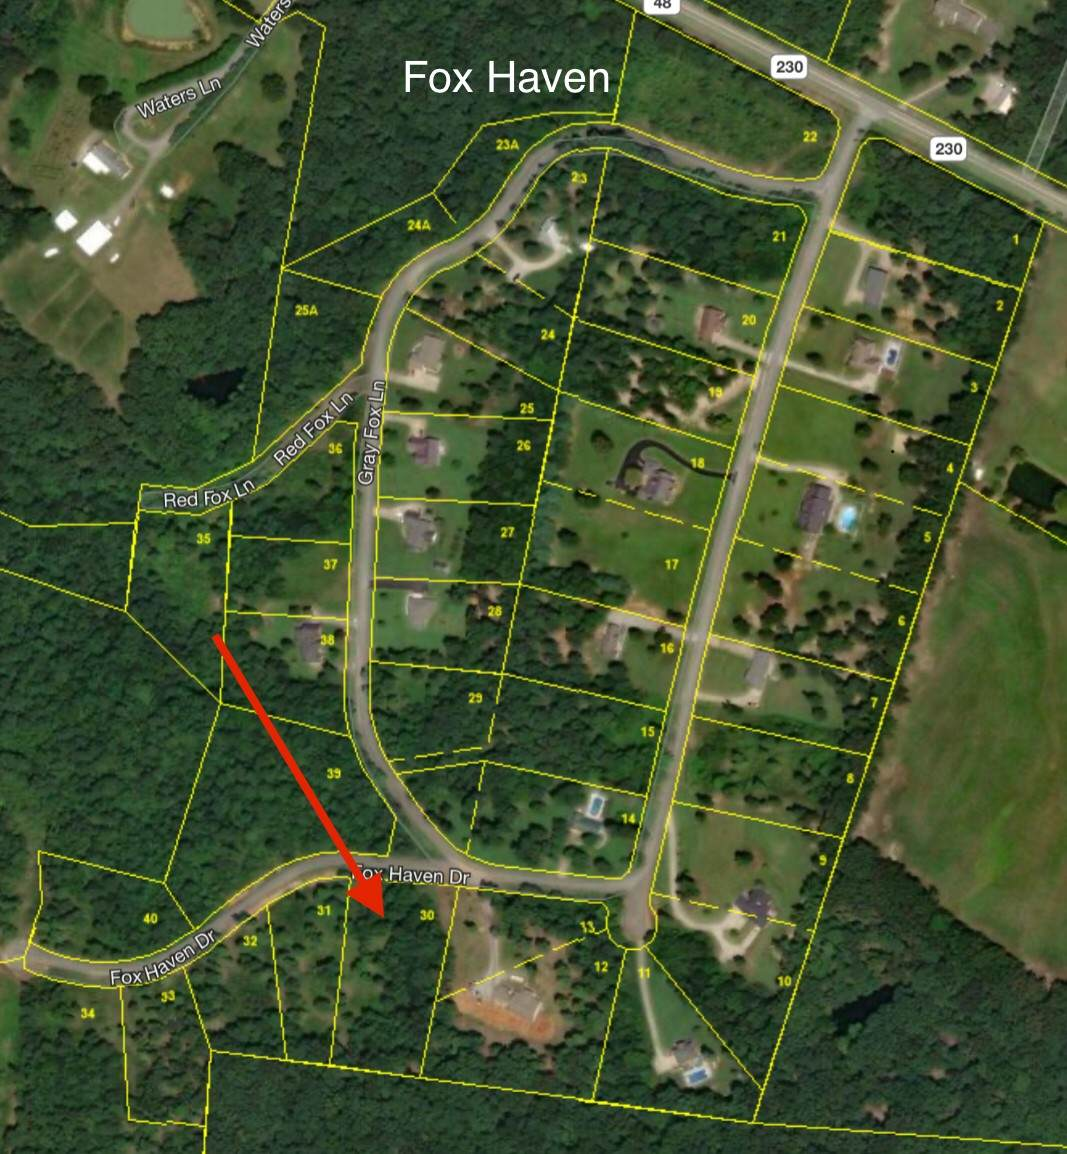 0 Fox Haven Dr - Photo 1